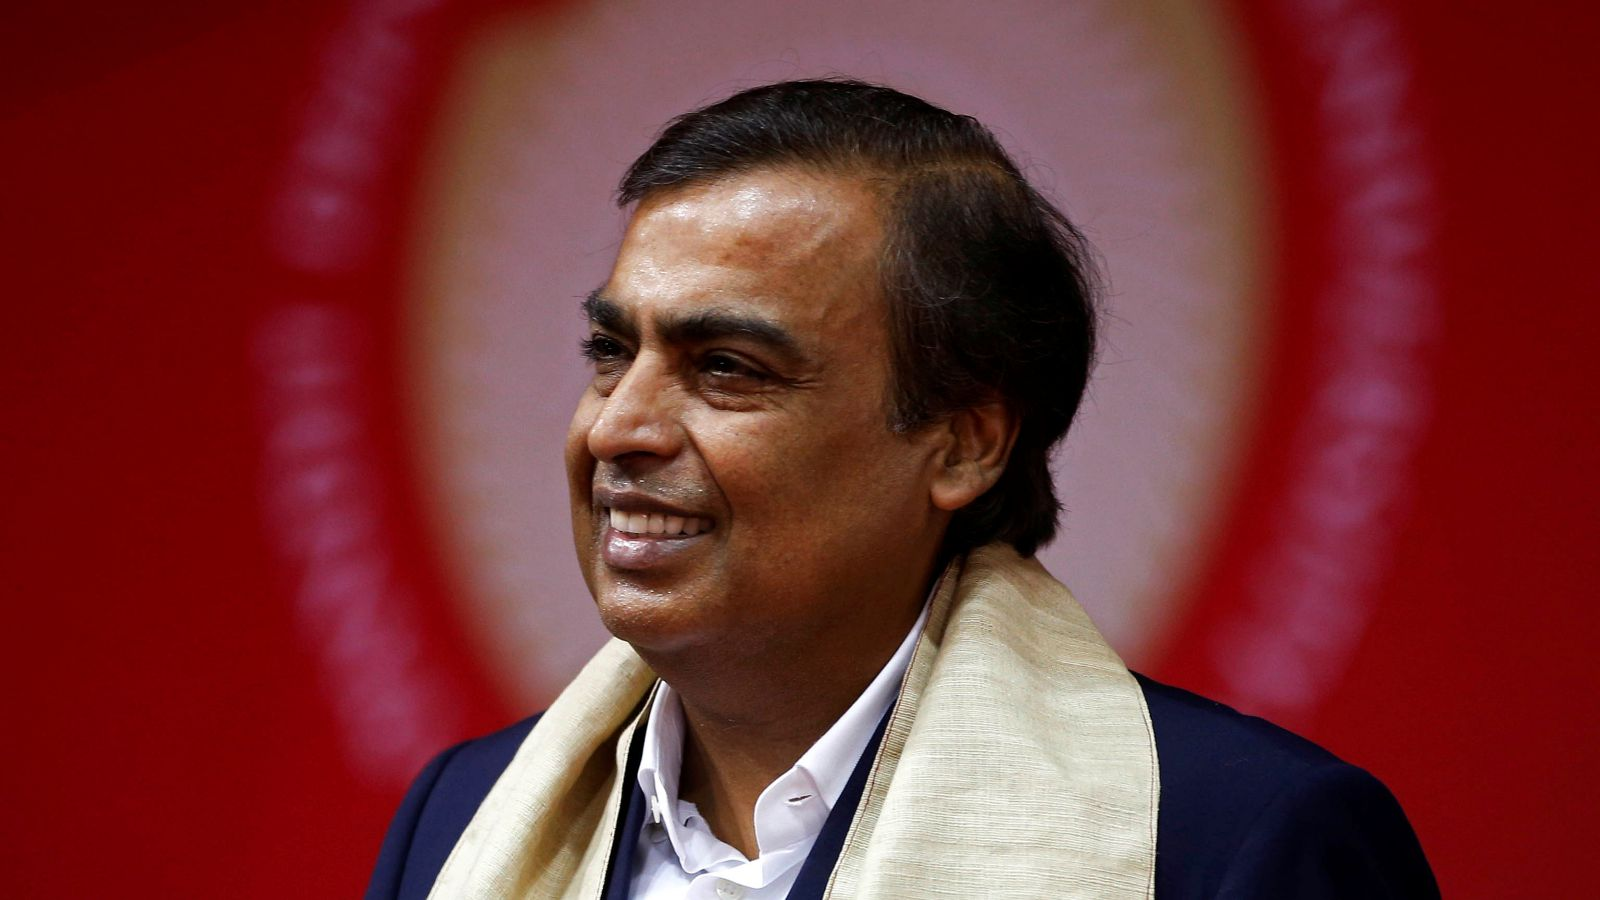 Mukesh Ambani, Chairman and Managing Director of Reliance Industries, attends a convocation at the Pandit Deendayal Petroleum University in Gandhinagar, India, September 23, 2017